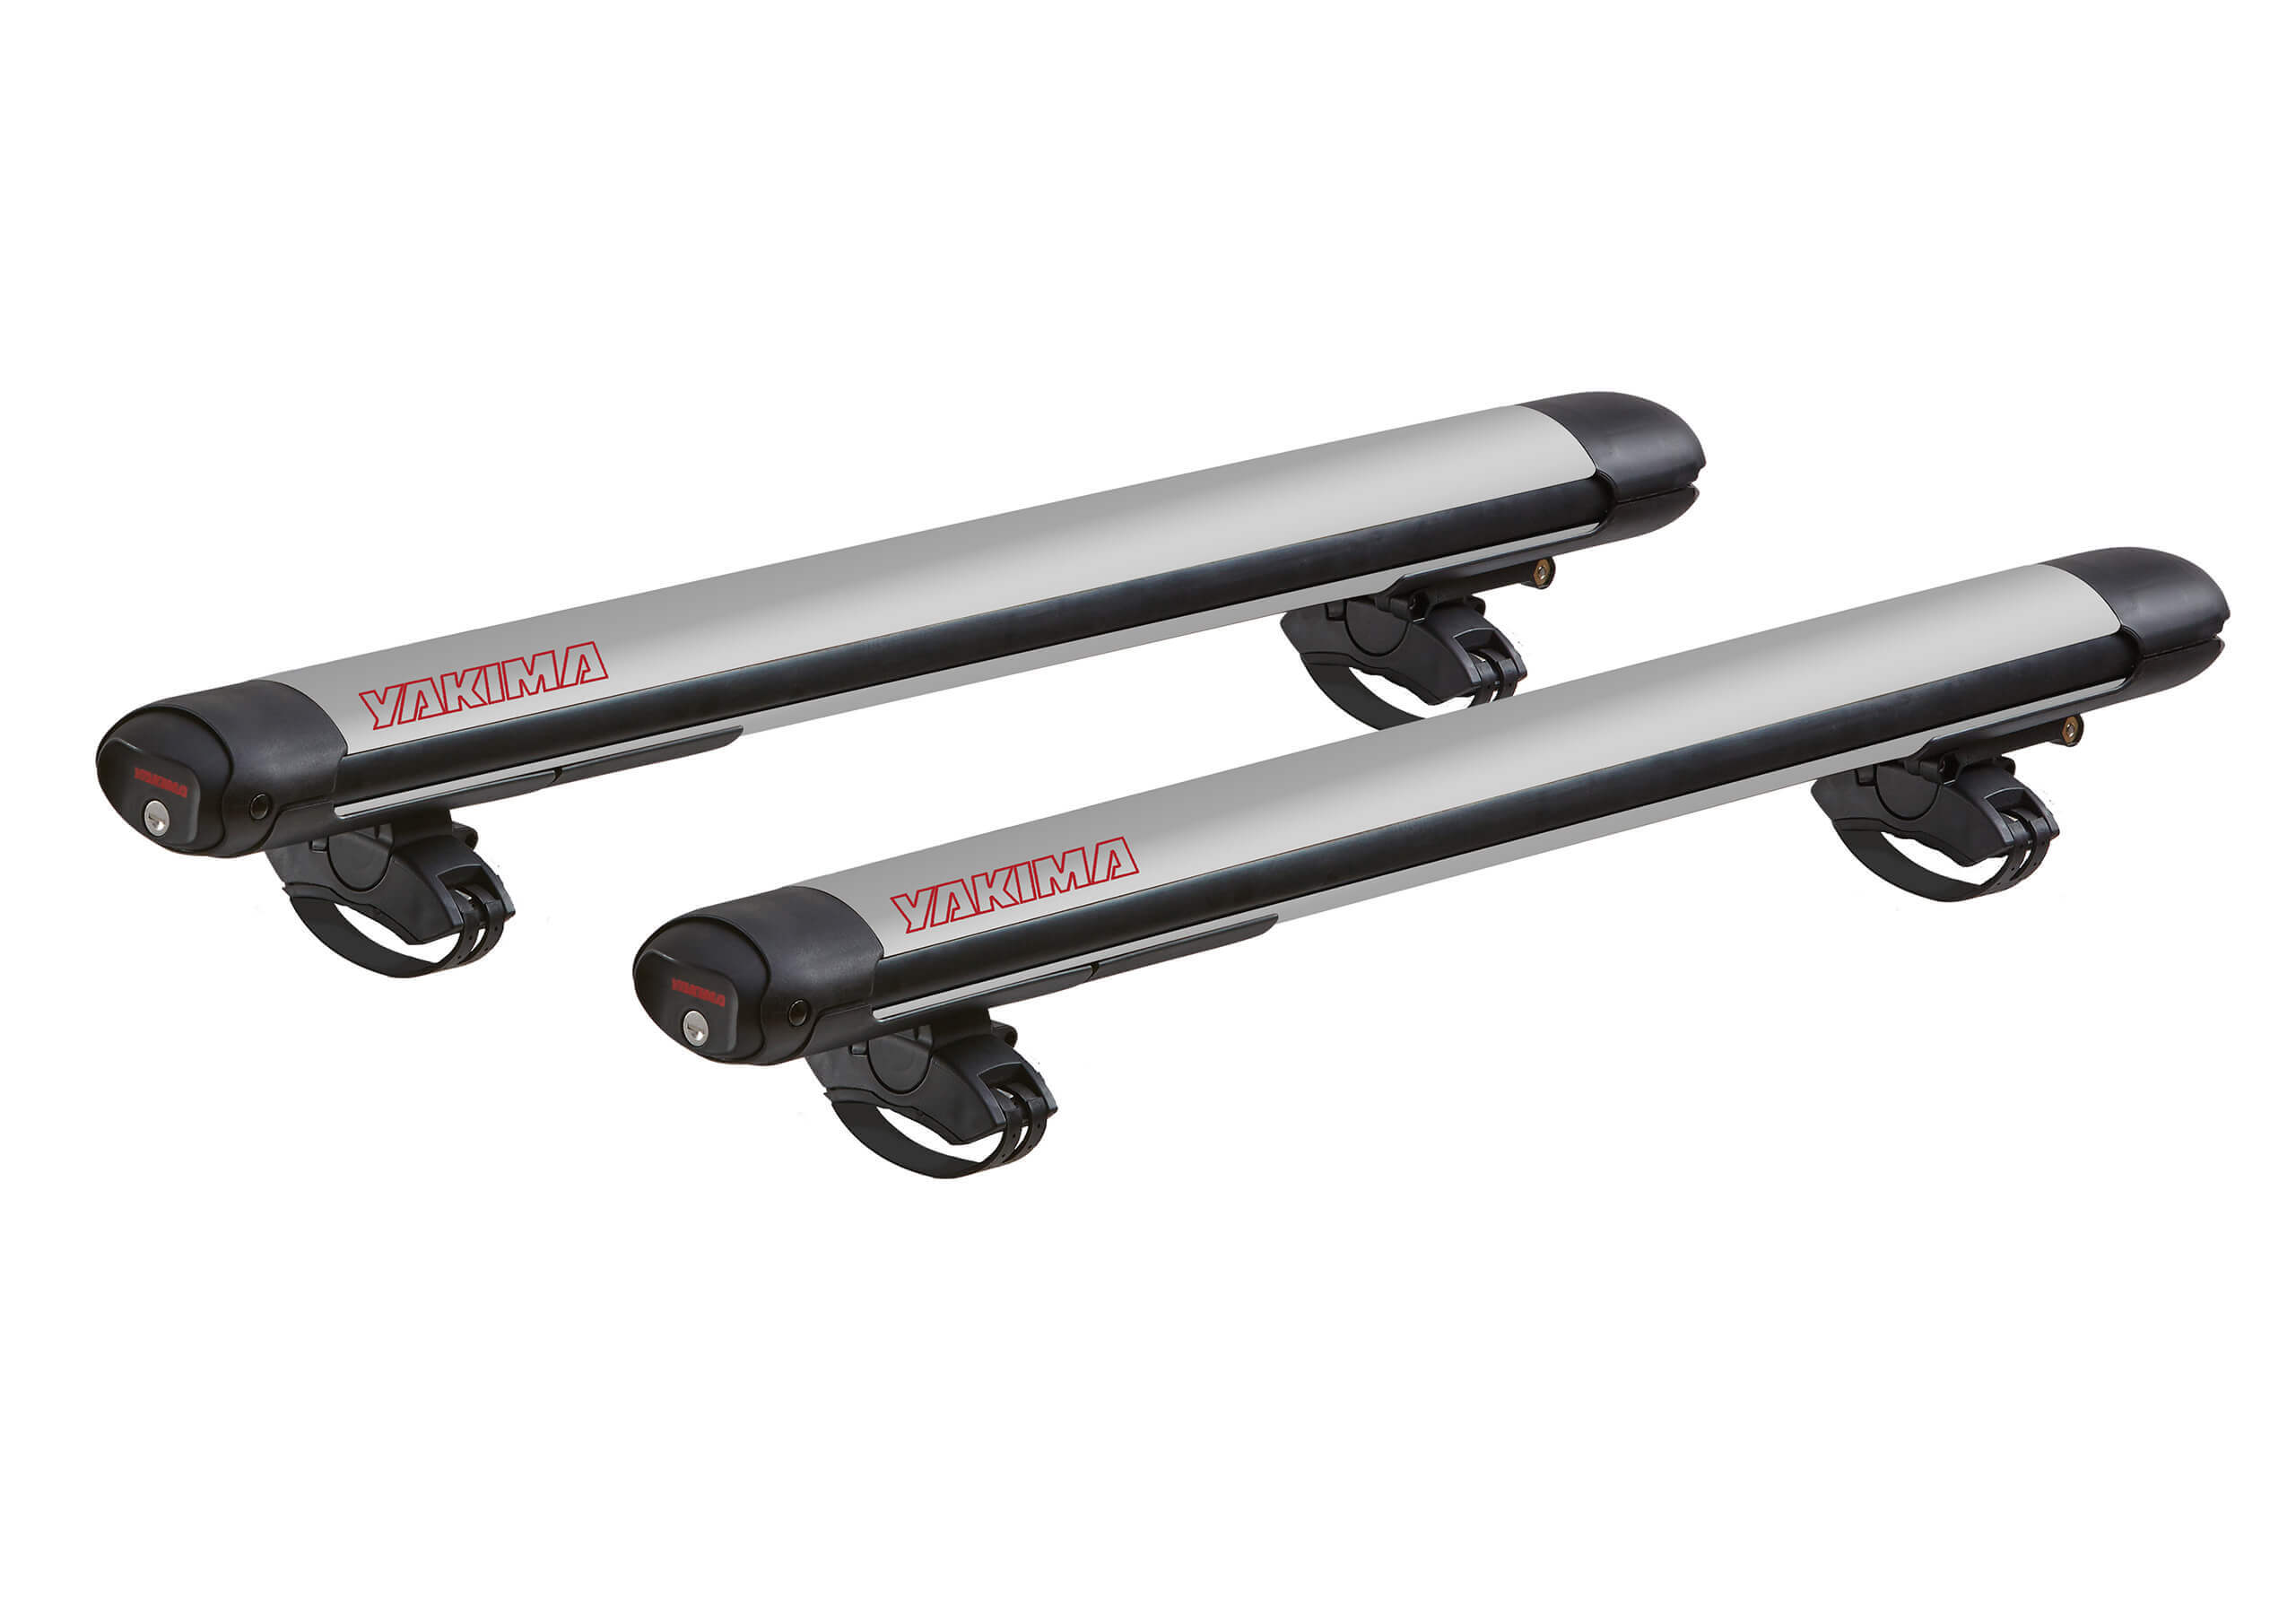 :Yakima FatCat Evo 6 silver- ski and board carrier with roof bars